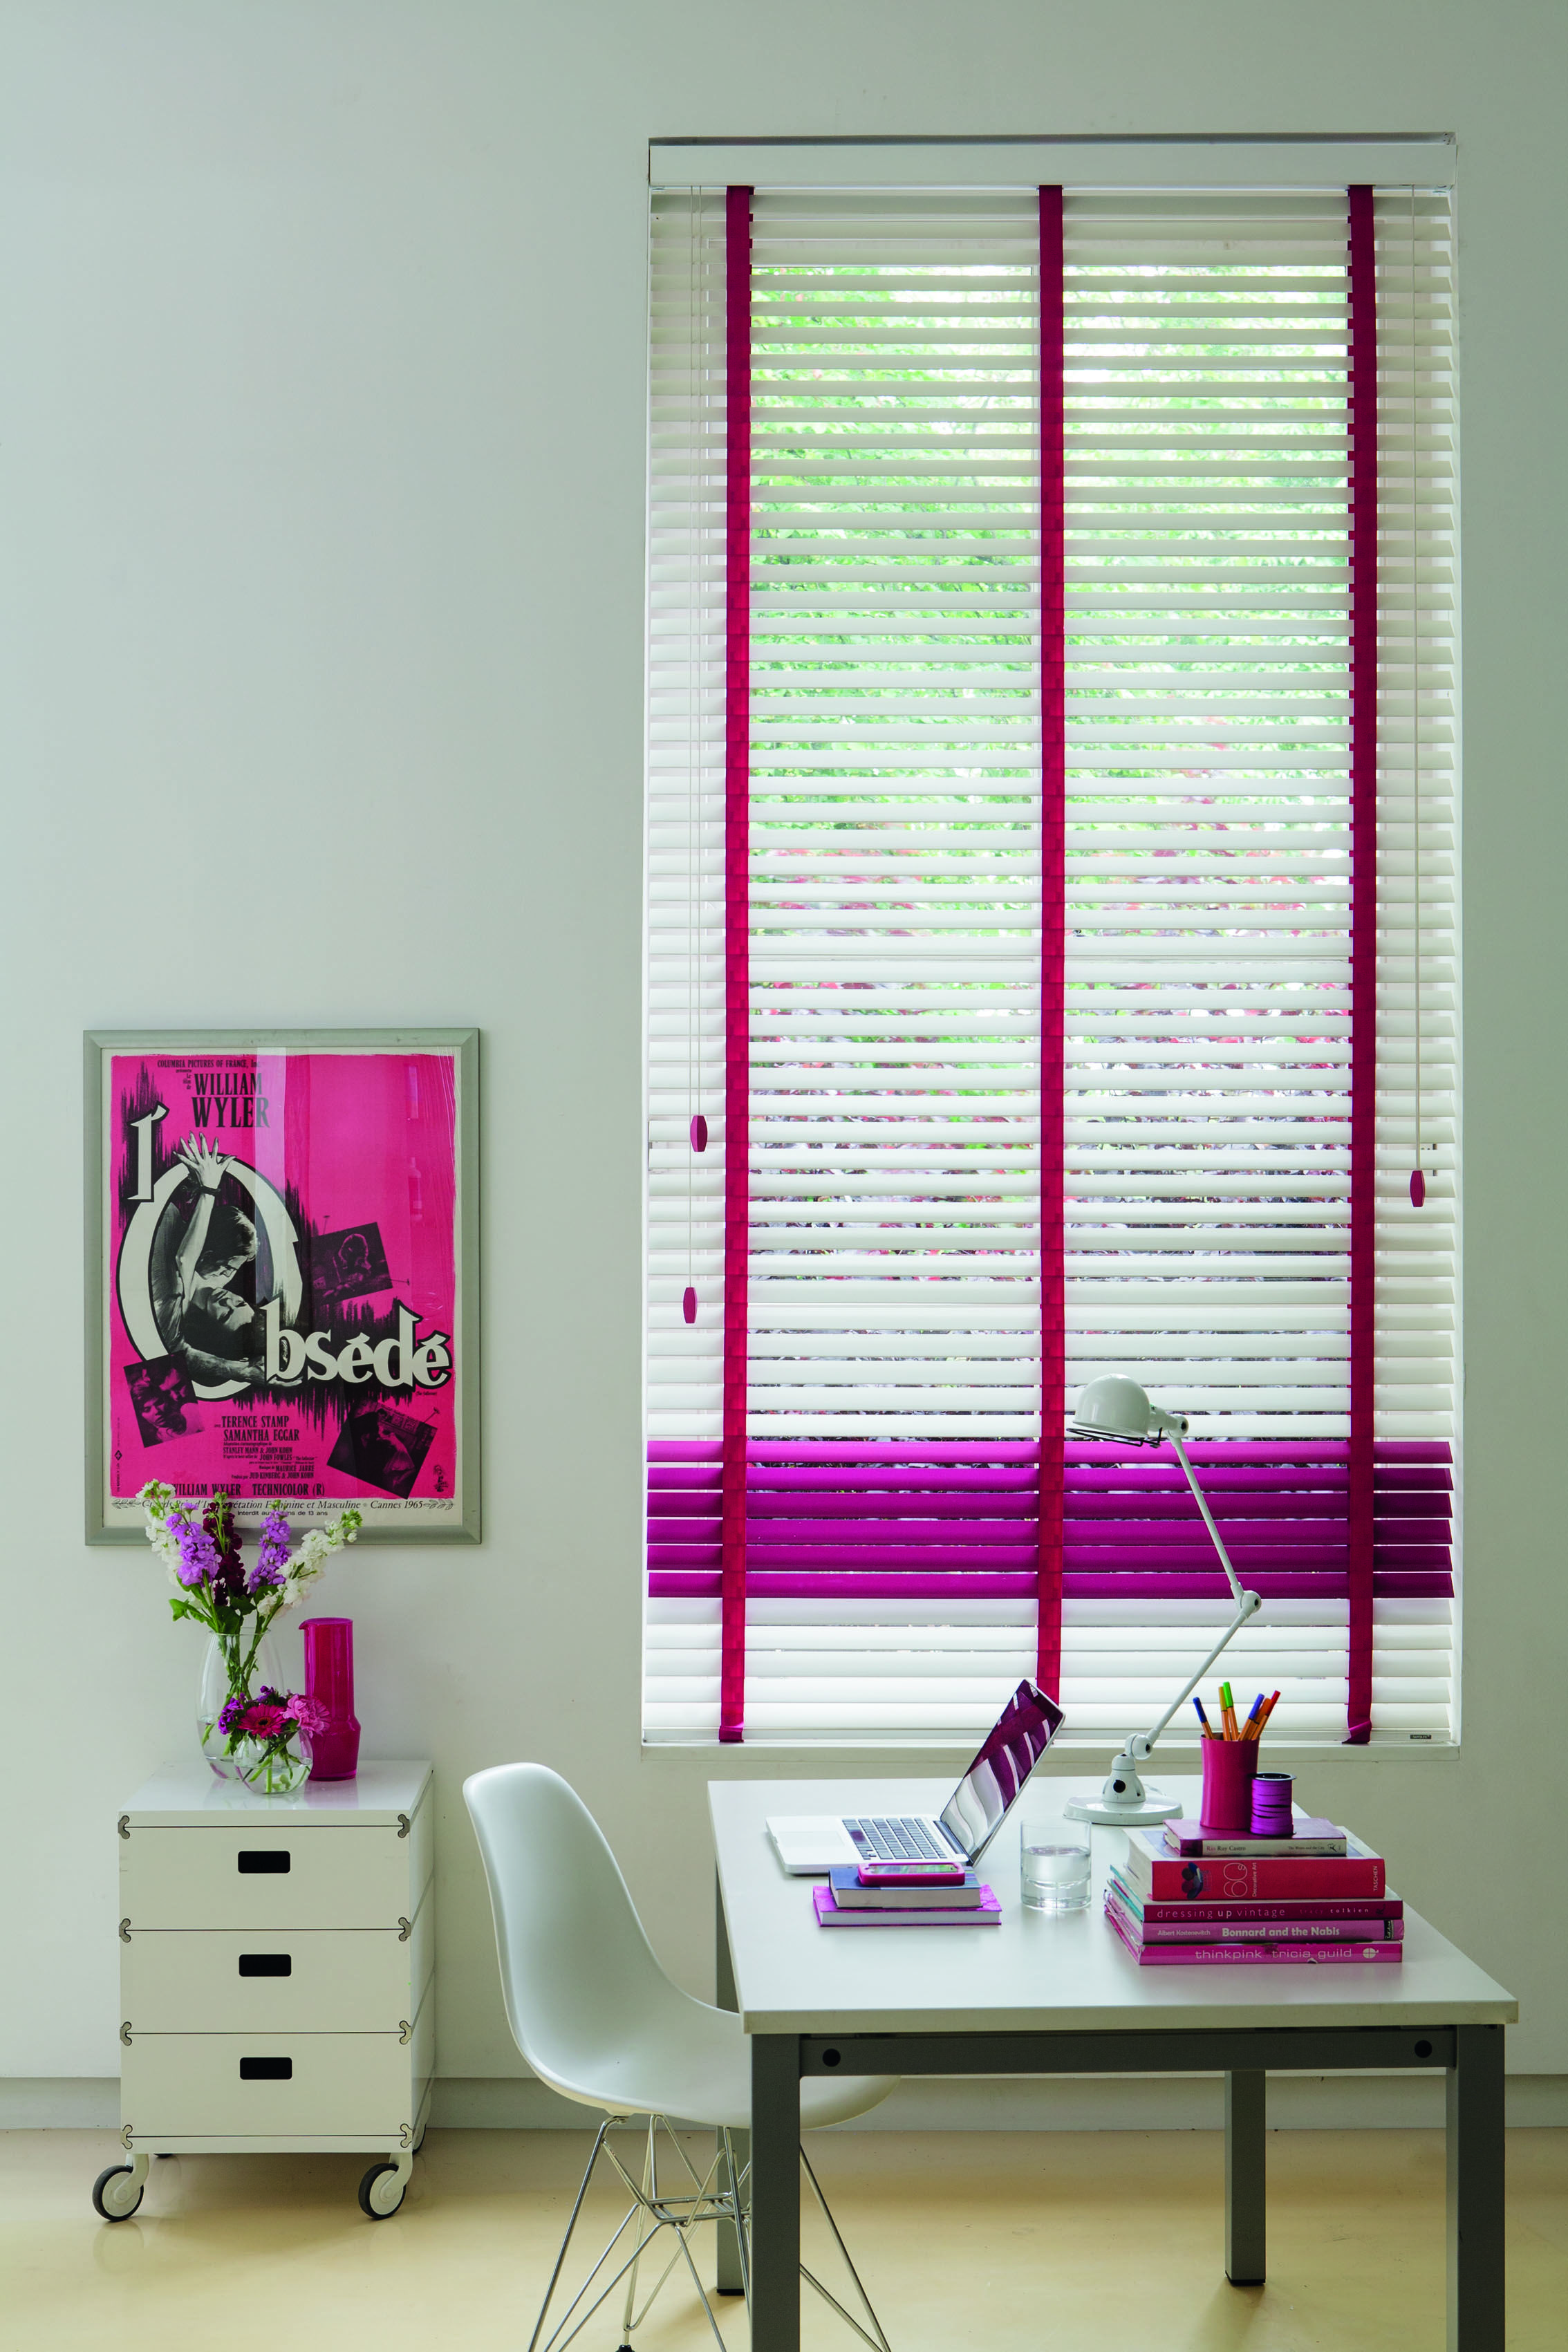 complete afbd com office blinds manchester commercial collections shuttersandblindsuk officeblinds